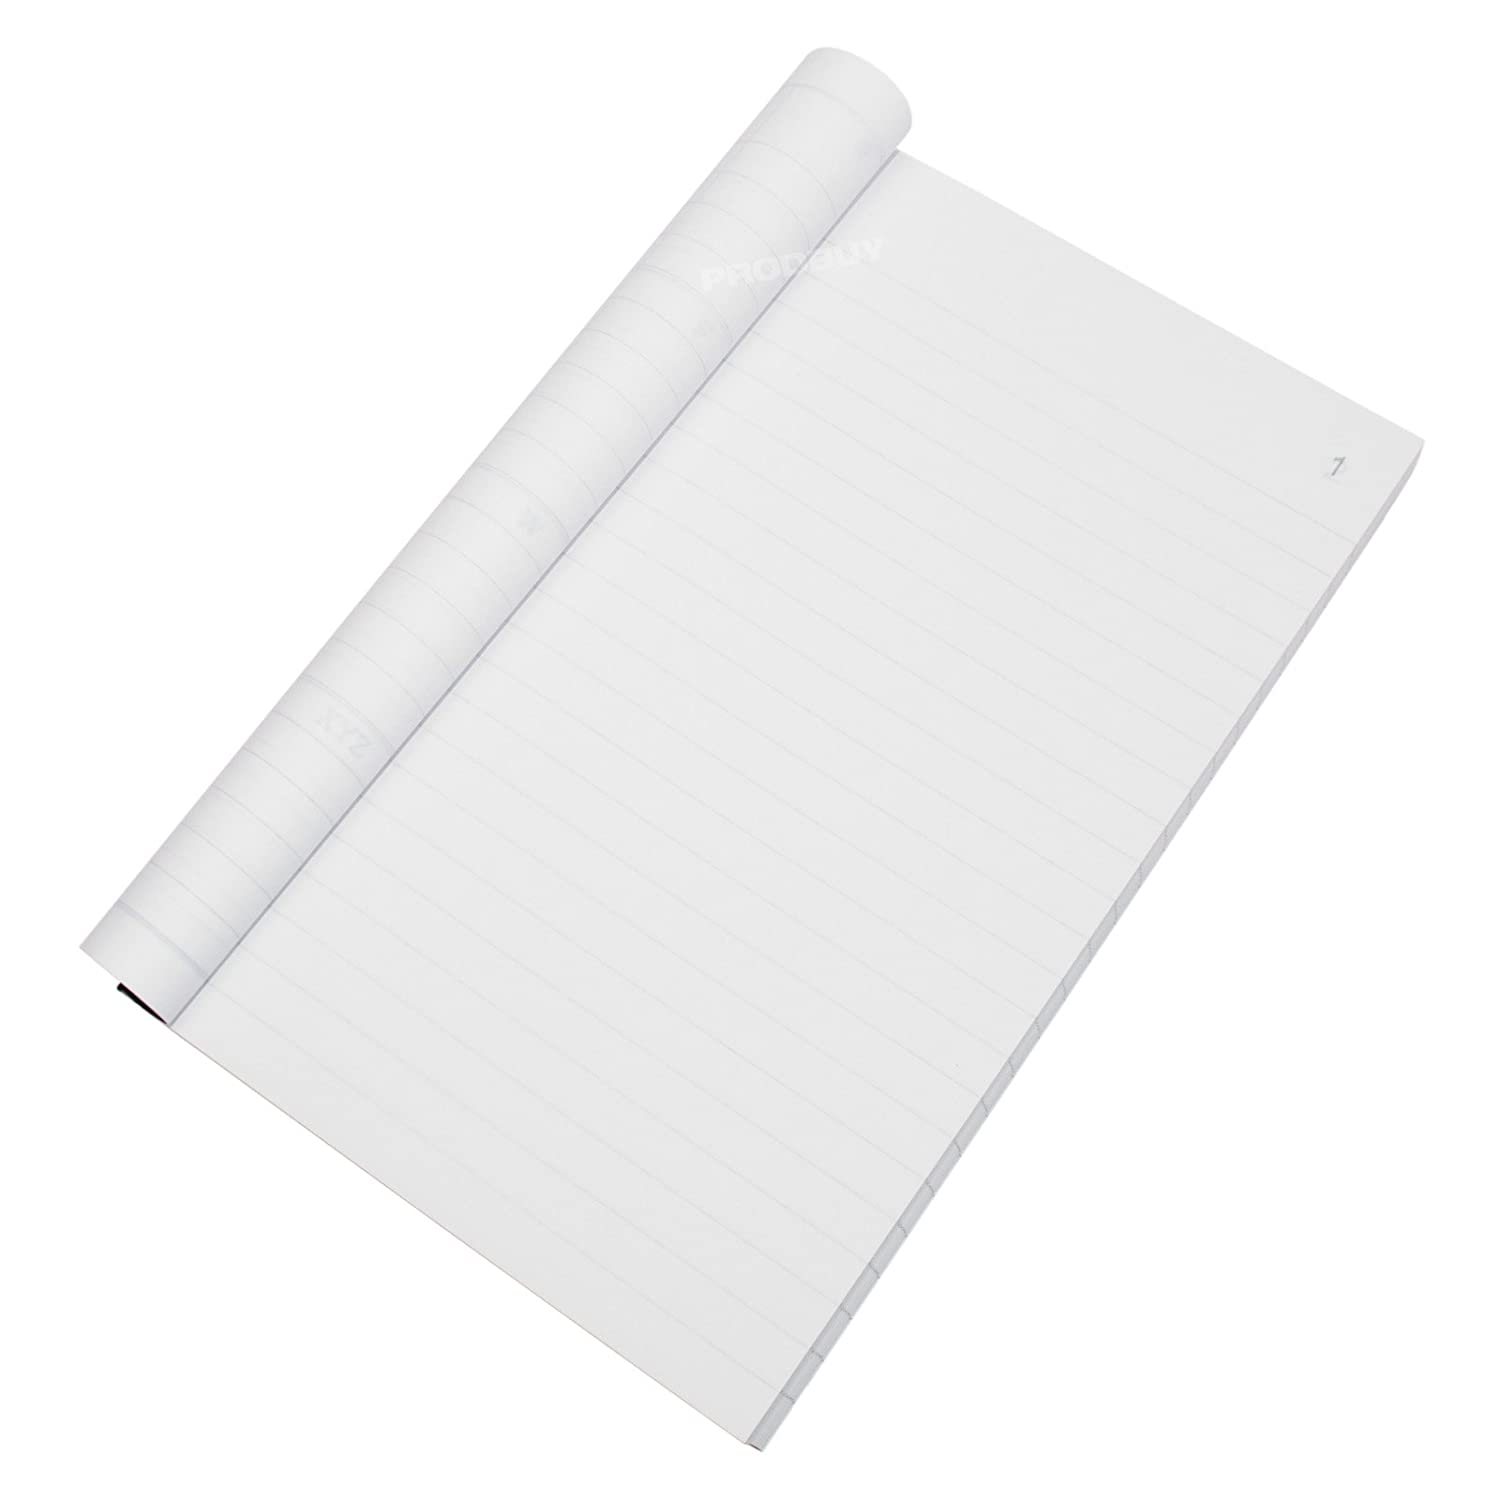 Full Size 100 Leaf Invoice Duplicate Books Receipt Feint Ruled Numbered Pads Pack of 5